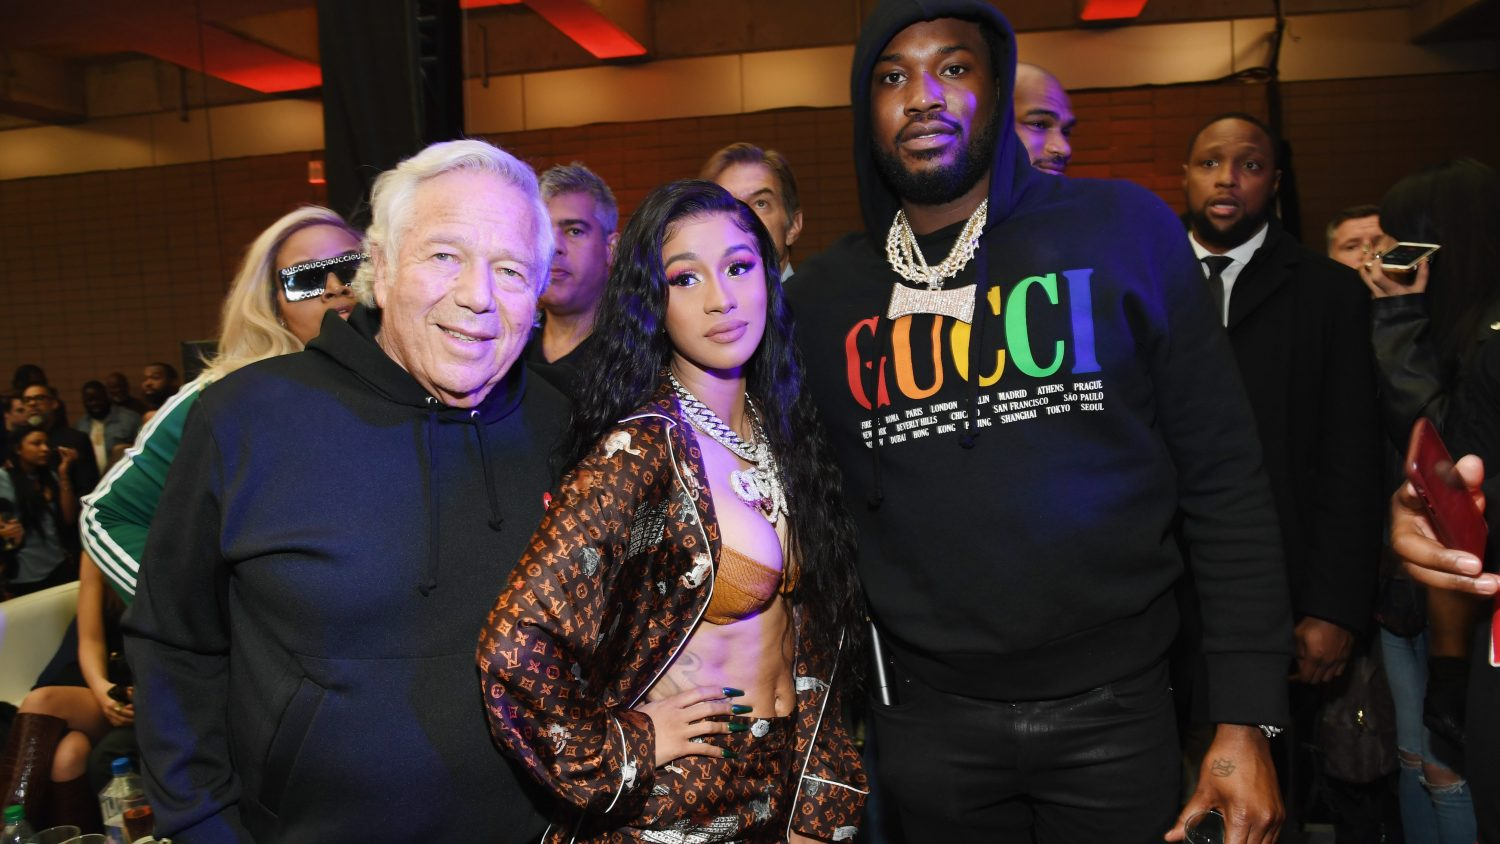 Atlanta Where Cardi B And Robert Kraft Dance On Stage